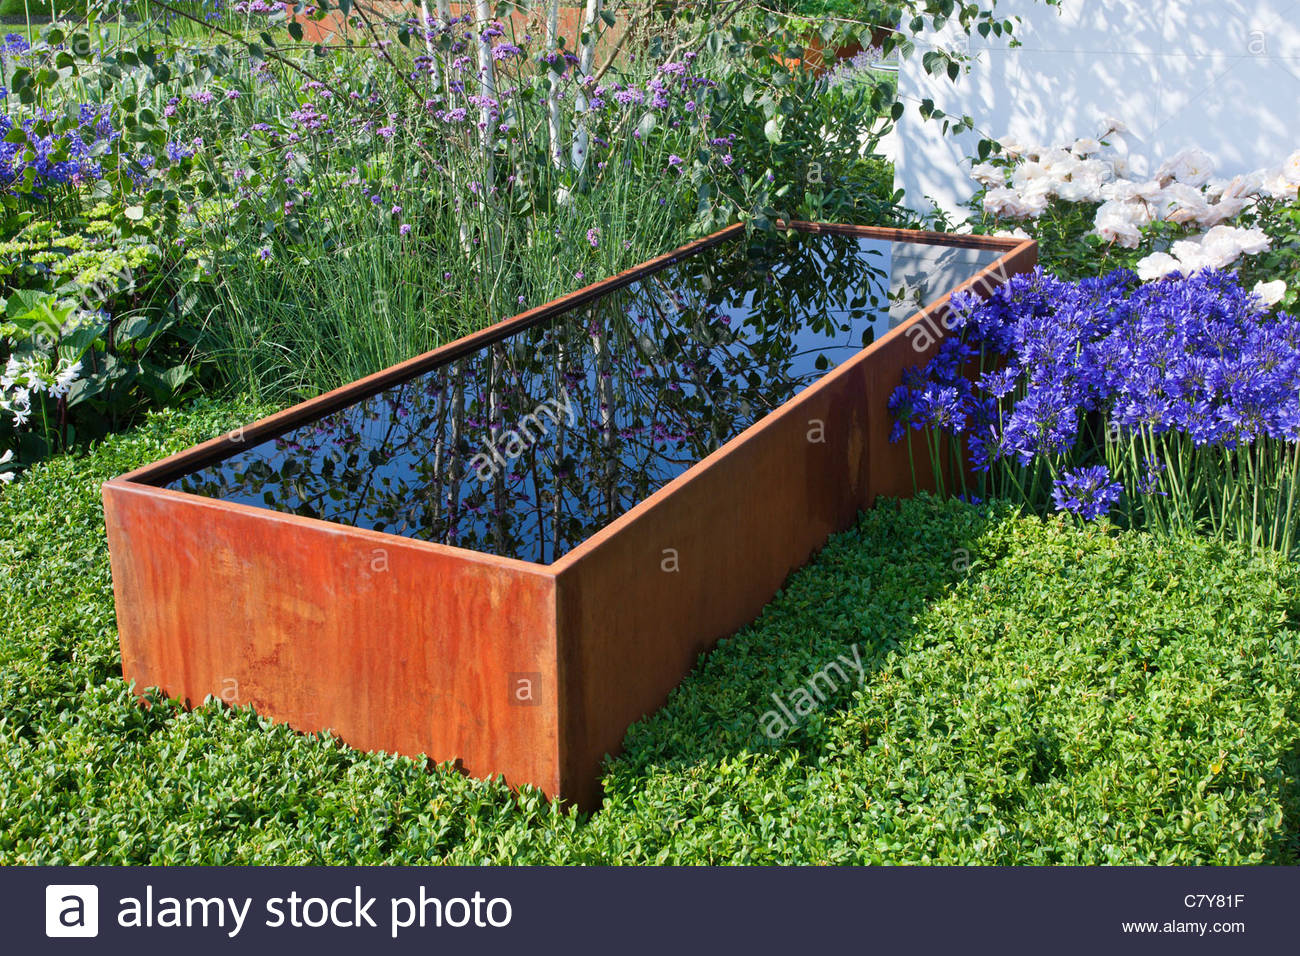 Contemporary Garden Design With Rusted Corten Steel Water Trough Surrounded  By Buxus Box Hedge, Verbena Bonariensis, Agapanthus